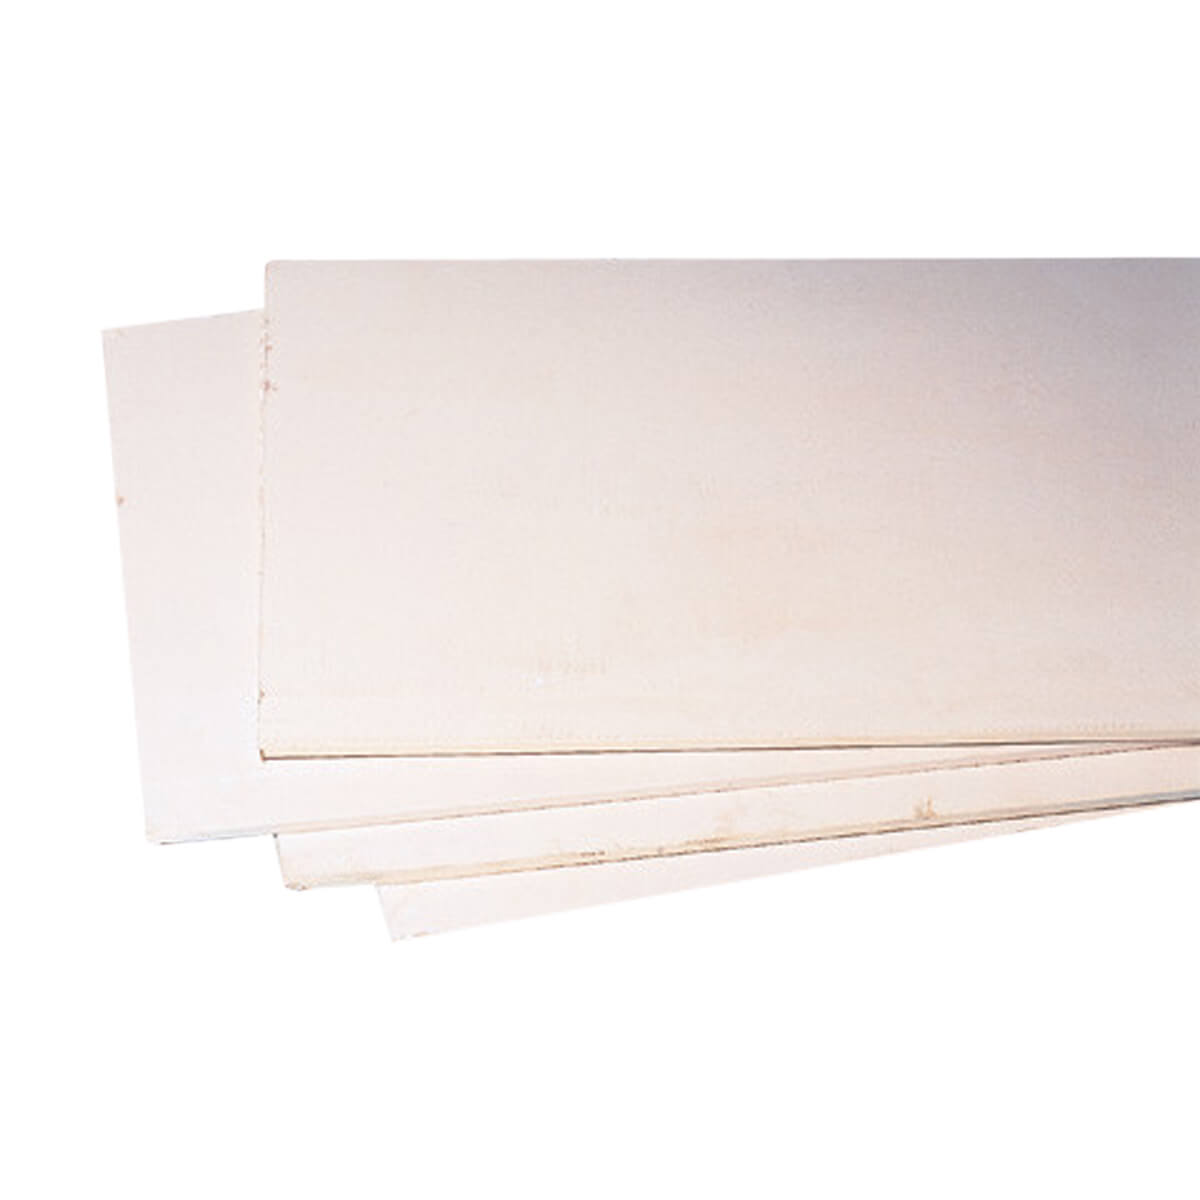 Standard Drywall - 4-ft x 8-ft 1/2-in sheet